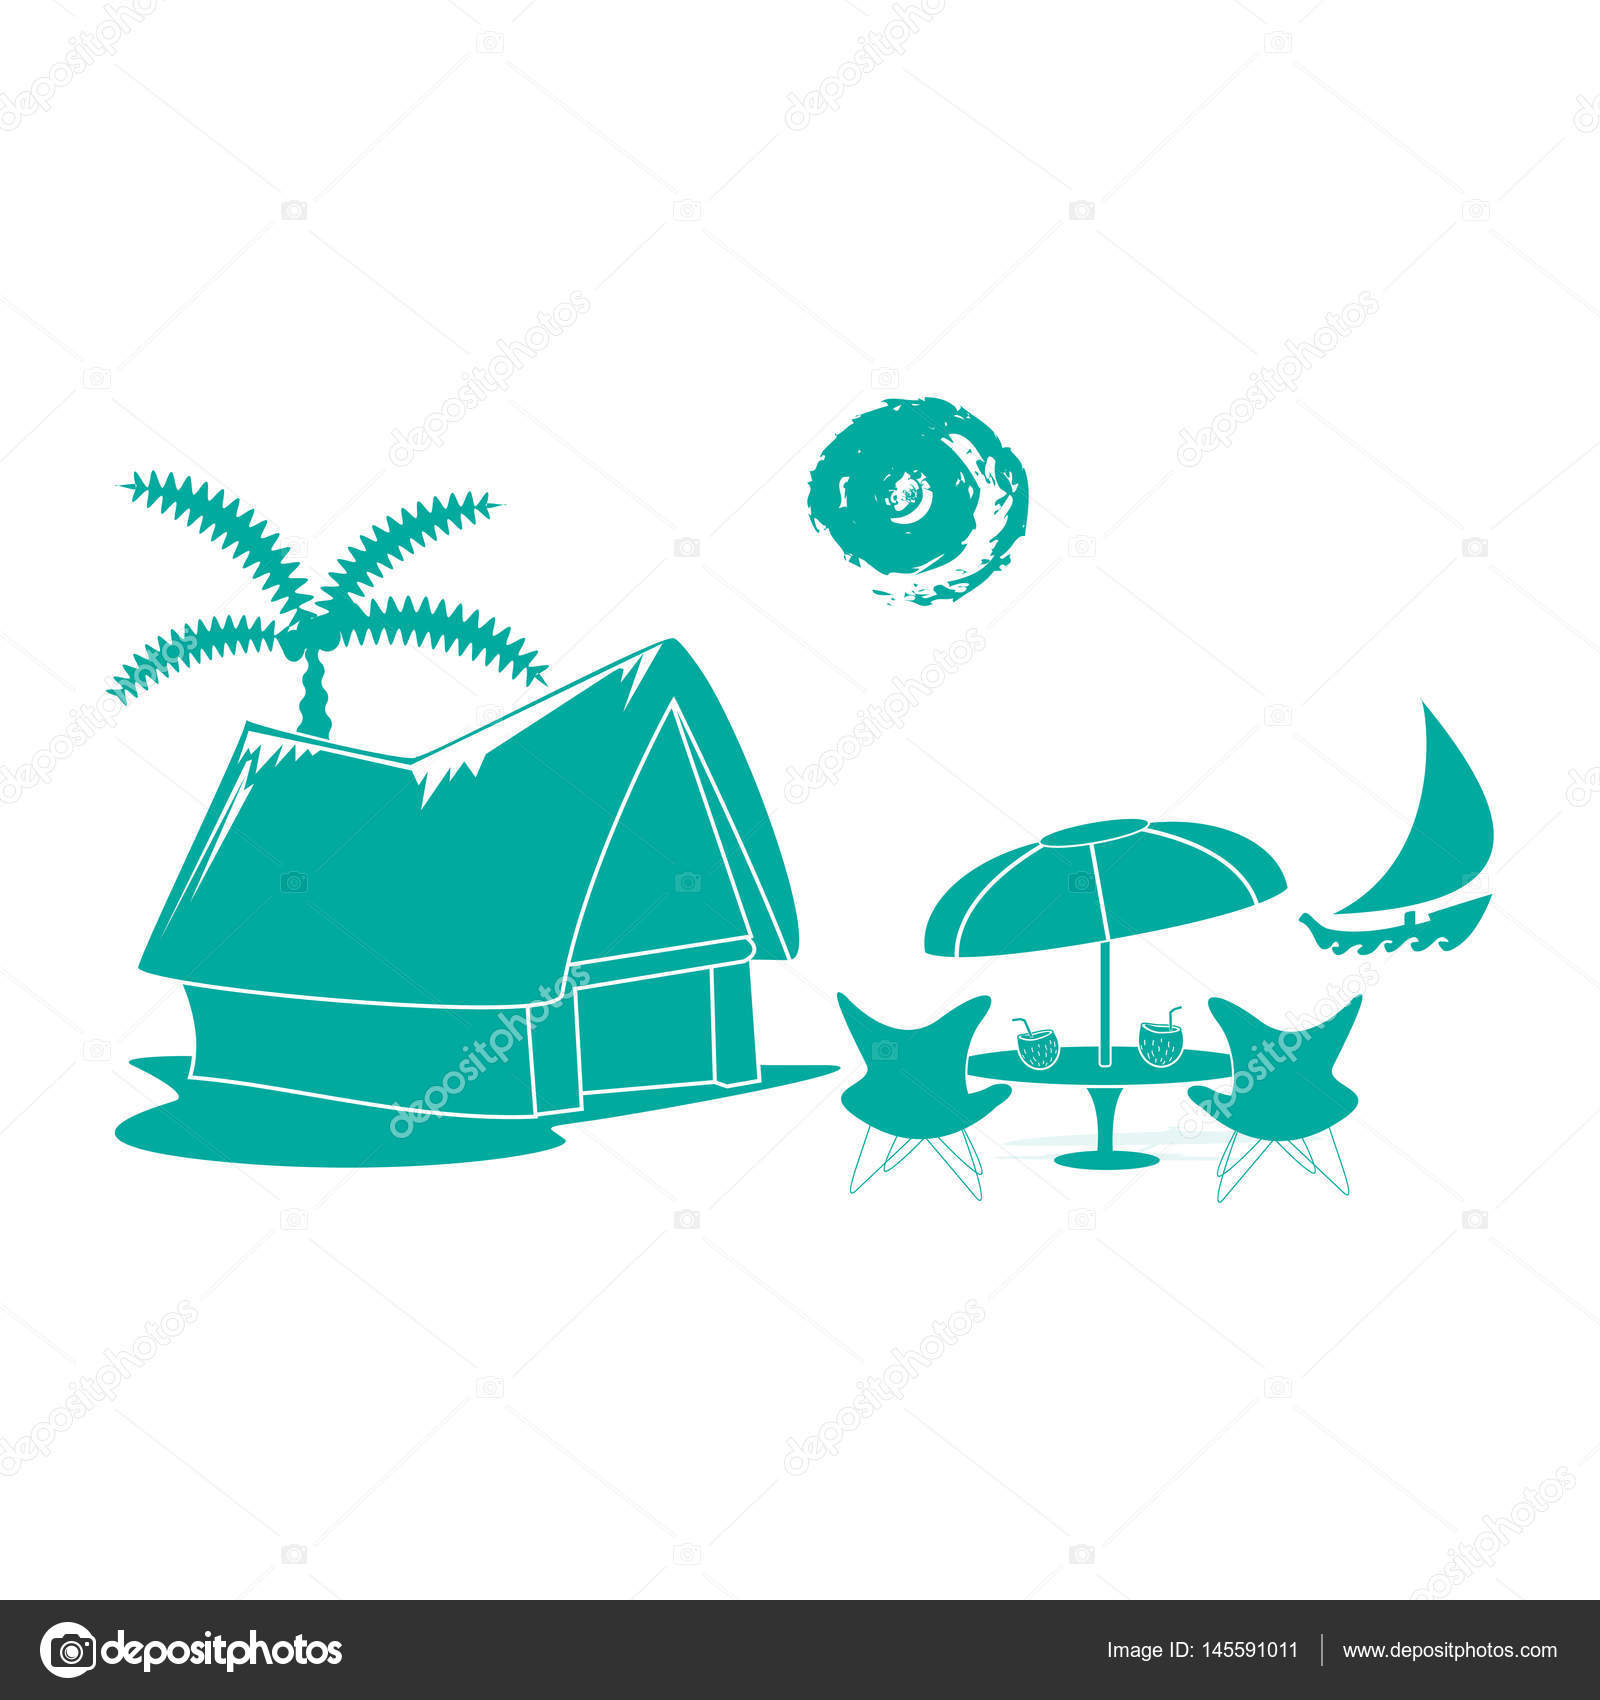 Shack clipart simple Risovalka2015 #145591011 icon Vector Stock